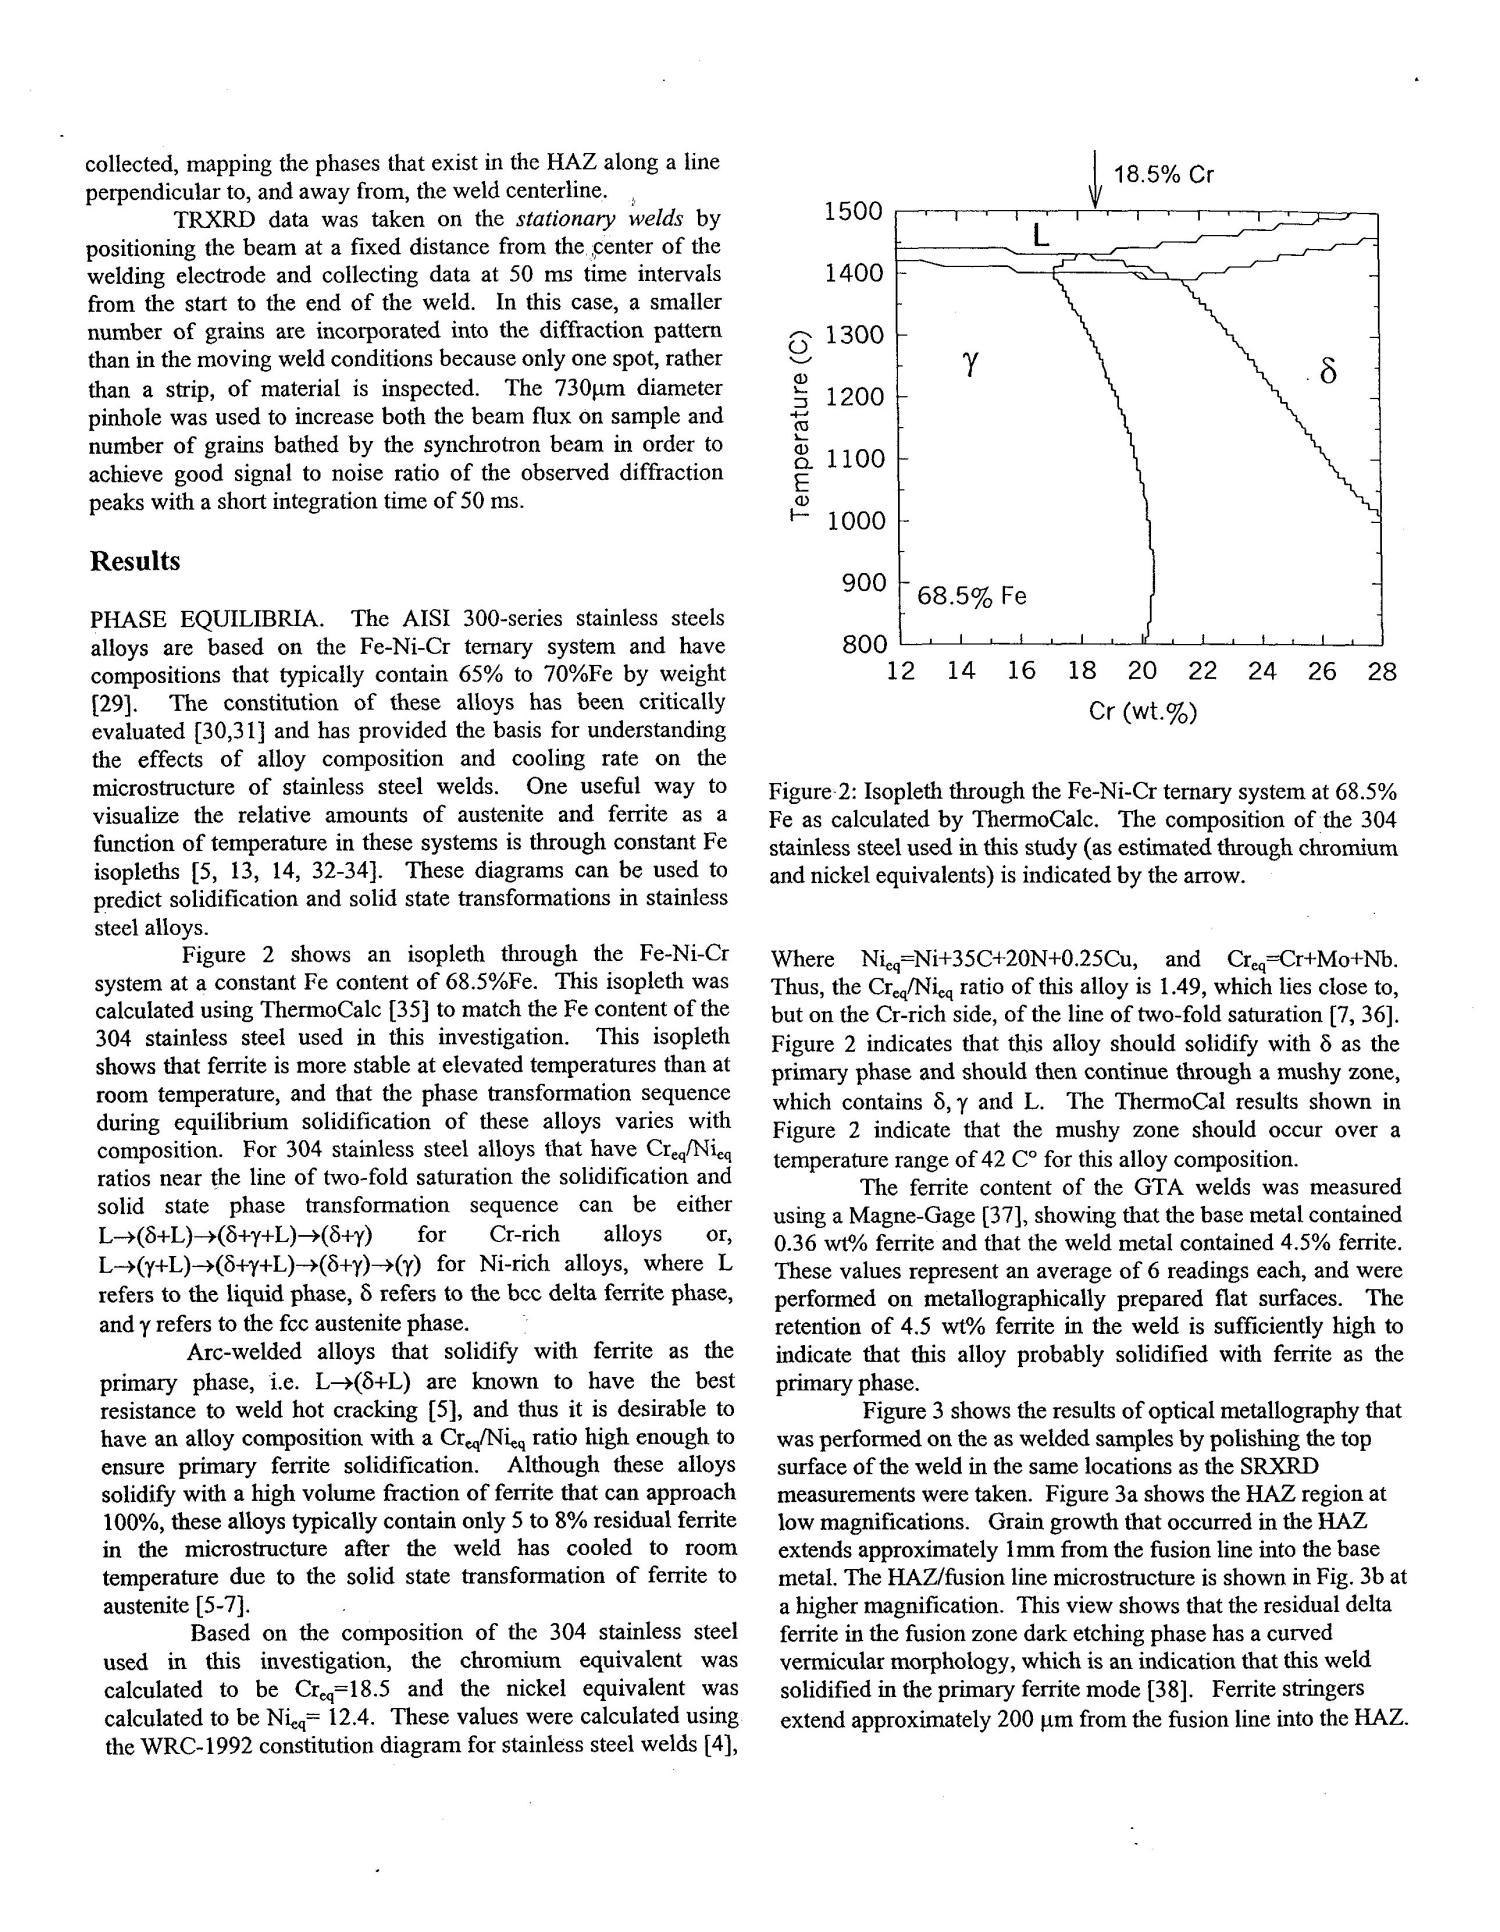 Direct Observation of Phase Transformations in Austenitic Stainless Steel Welds Using In-situ Spatially Resolved and Time-resolved X-ray Diffraction - Page 5 of 11 - UNT Digital Library Direct Observation of Phase Transformations in Austenitic Stainless Steel Welds Using In-situ Spatially Resolved and Time-resolved X-ray Diffraction - 웹